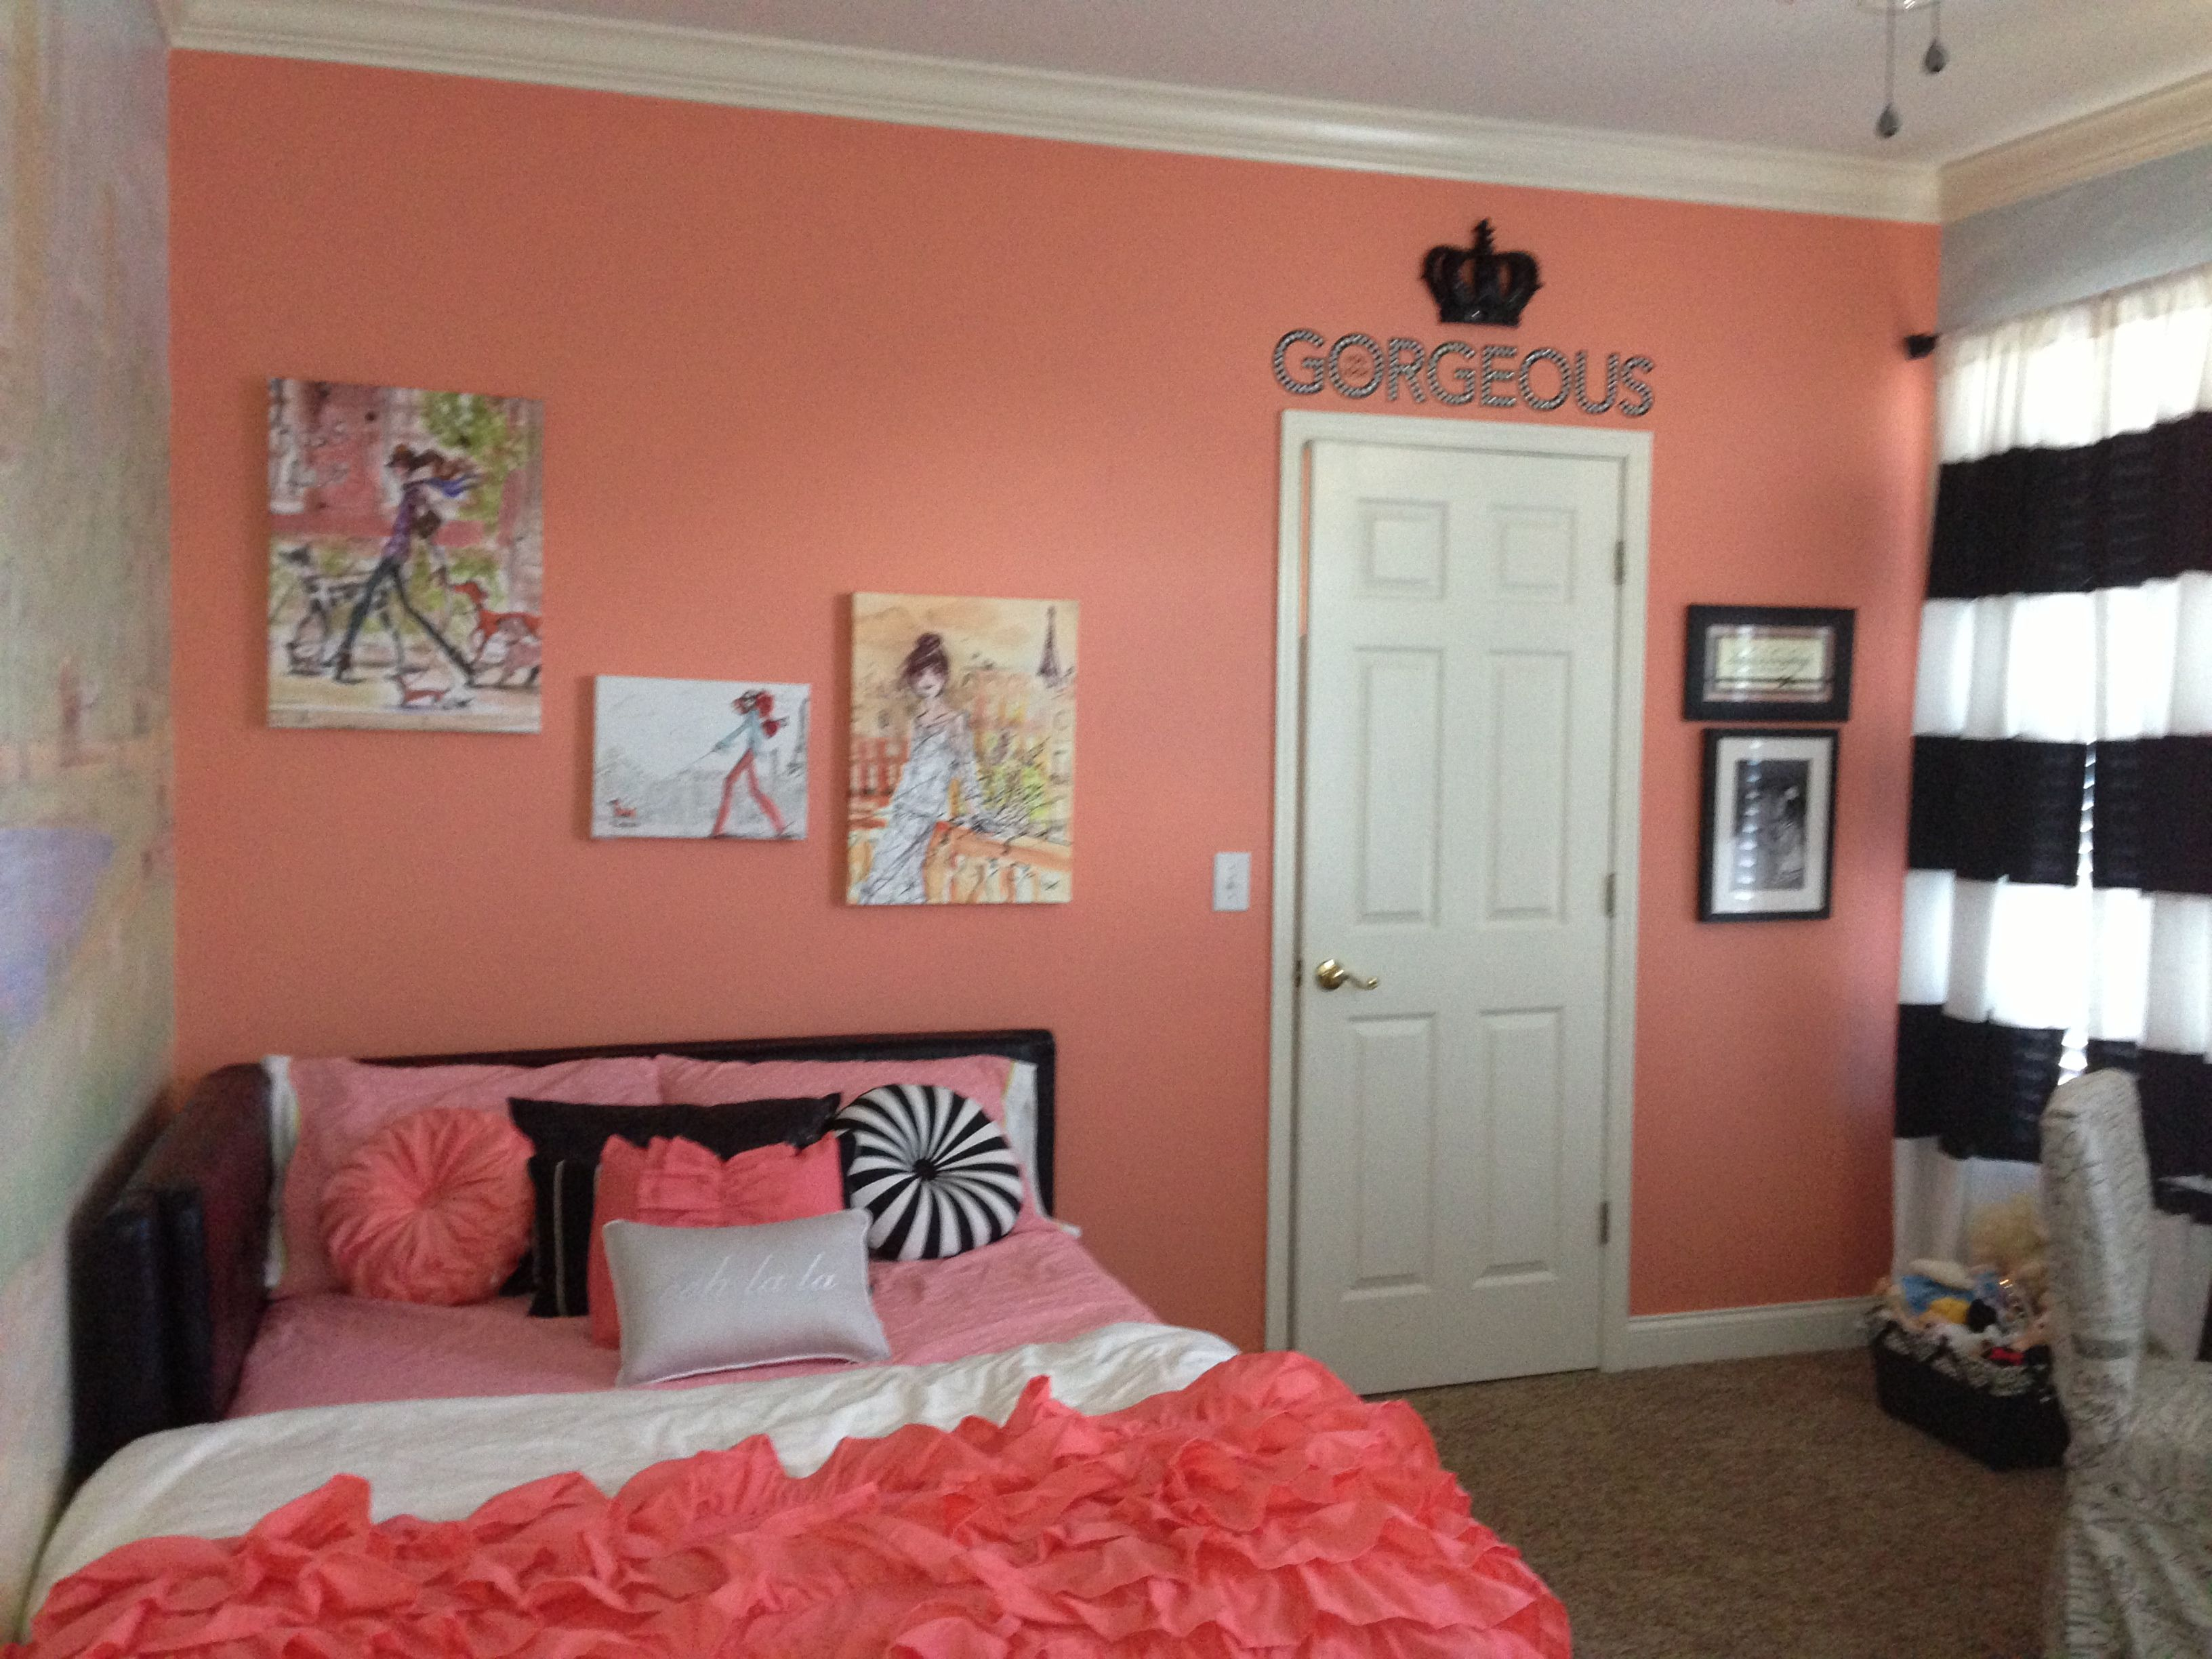 Black coral coral room decor google search girls room for Coral walls living room